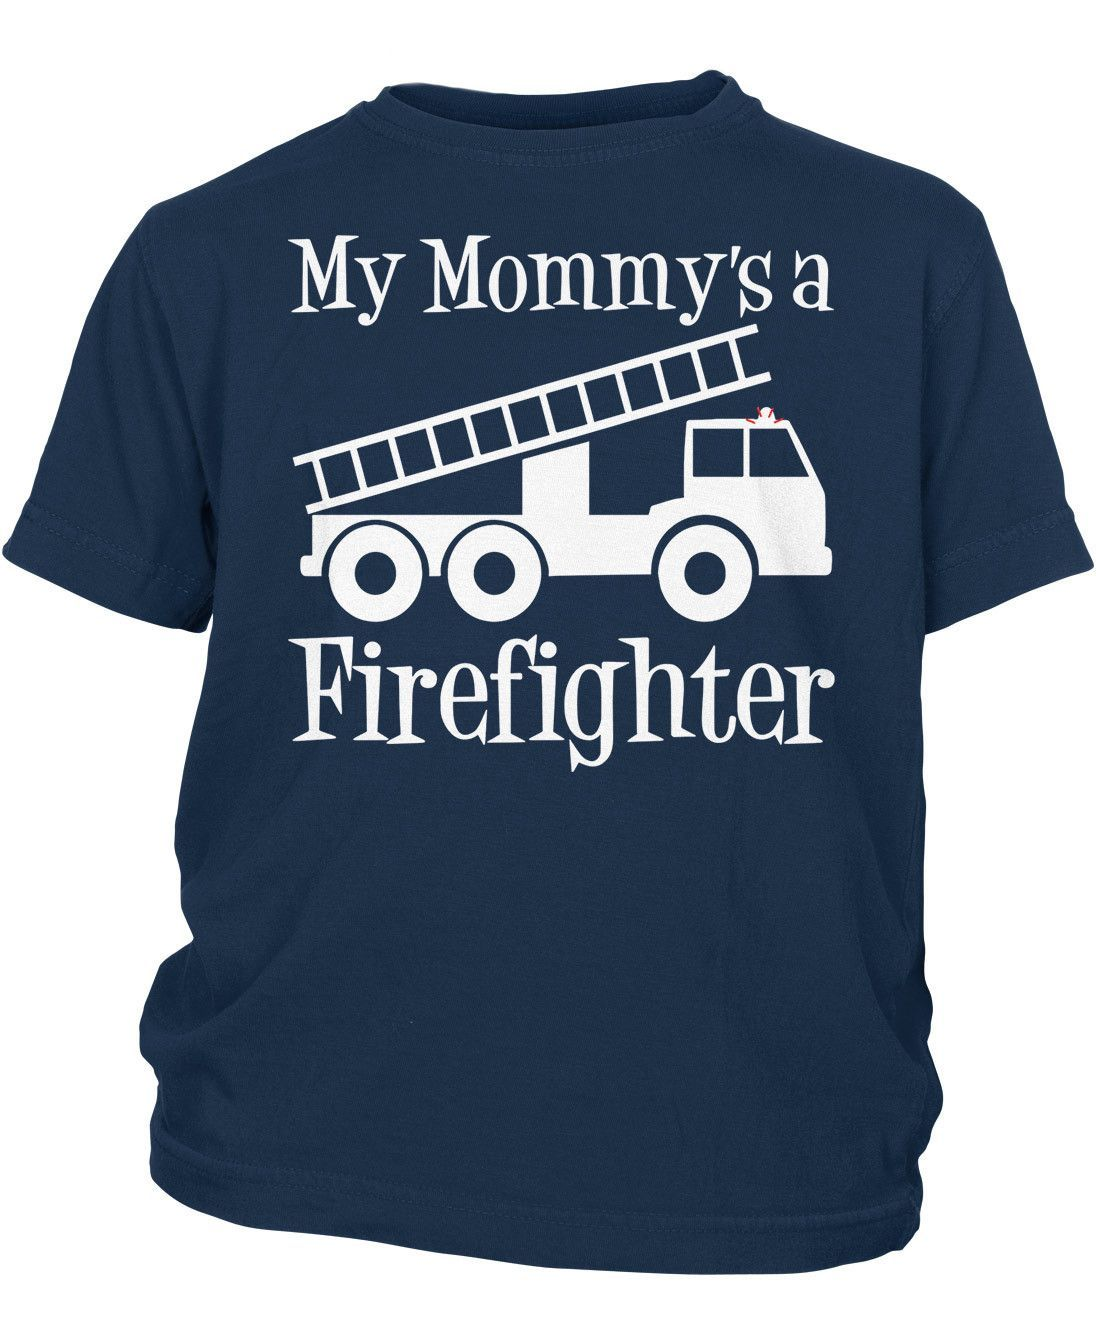 My Mommy's a Firefighter What's cooler then having a firefighter mom? Here is the fun design that any child can wear with pride. Makes a great unique gift. Infant, Toddler & Youth T-Shirts: - Made fro